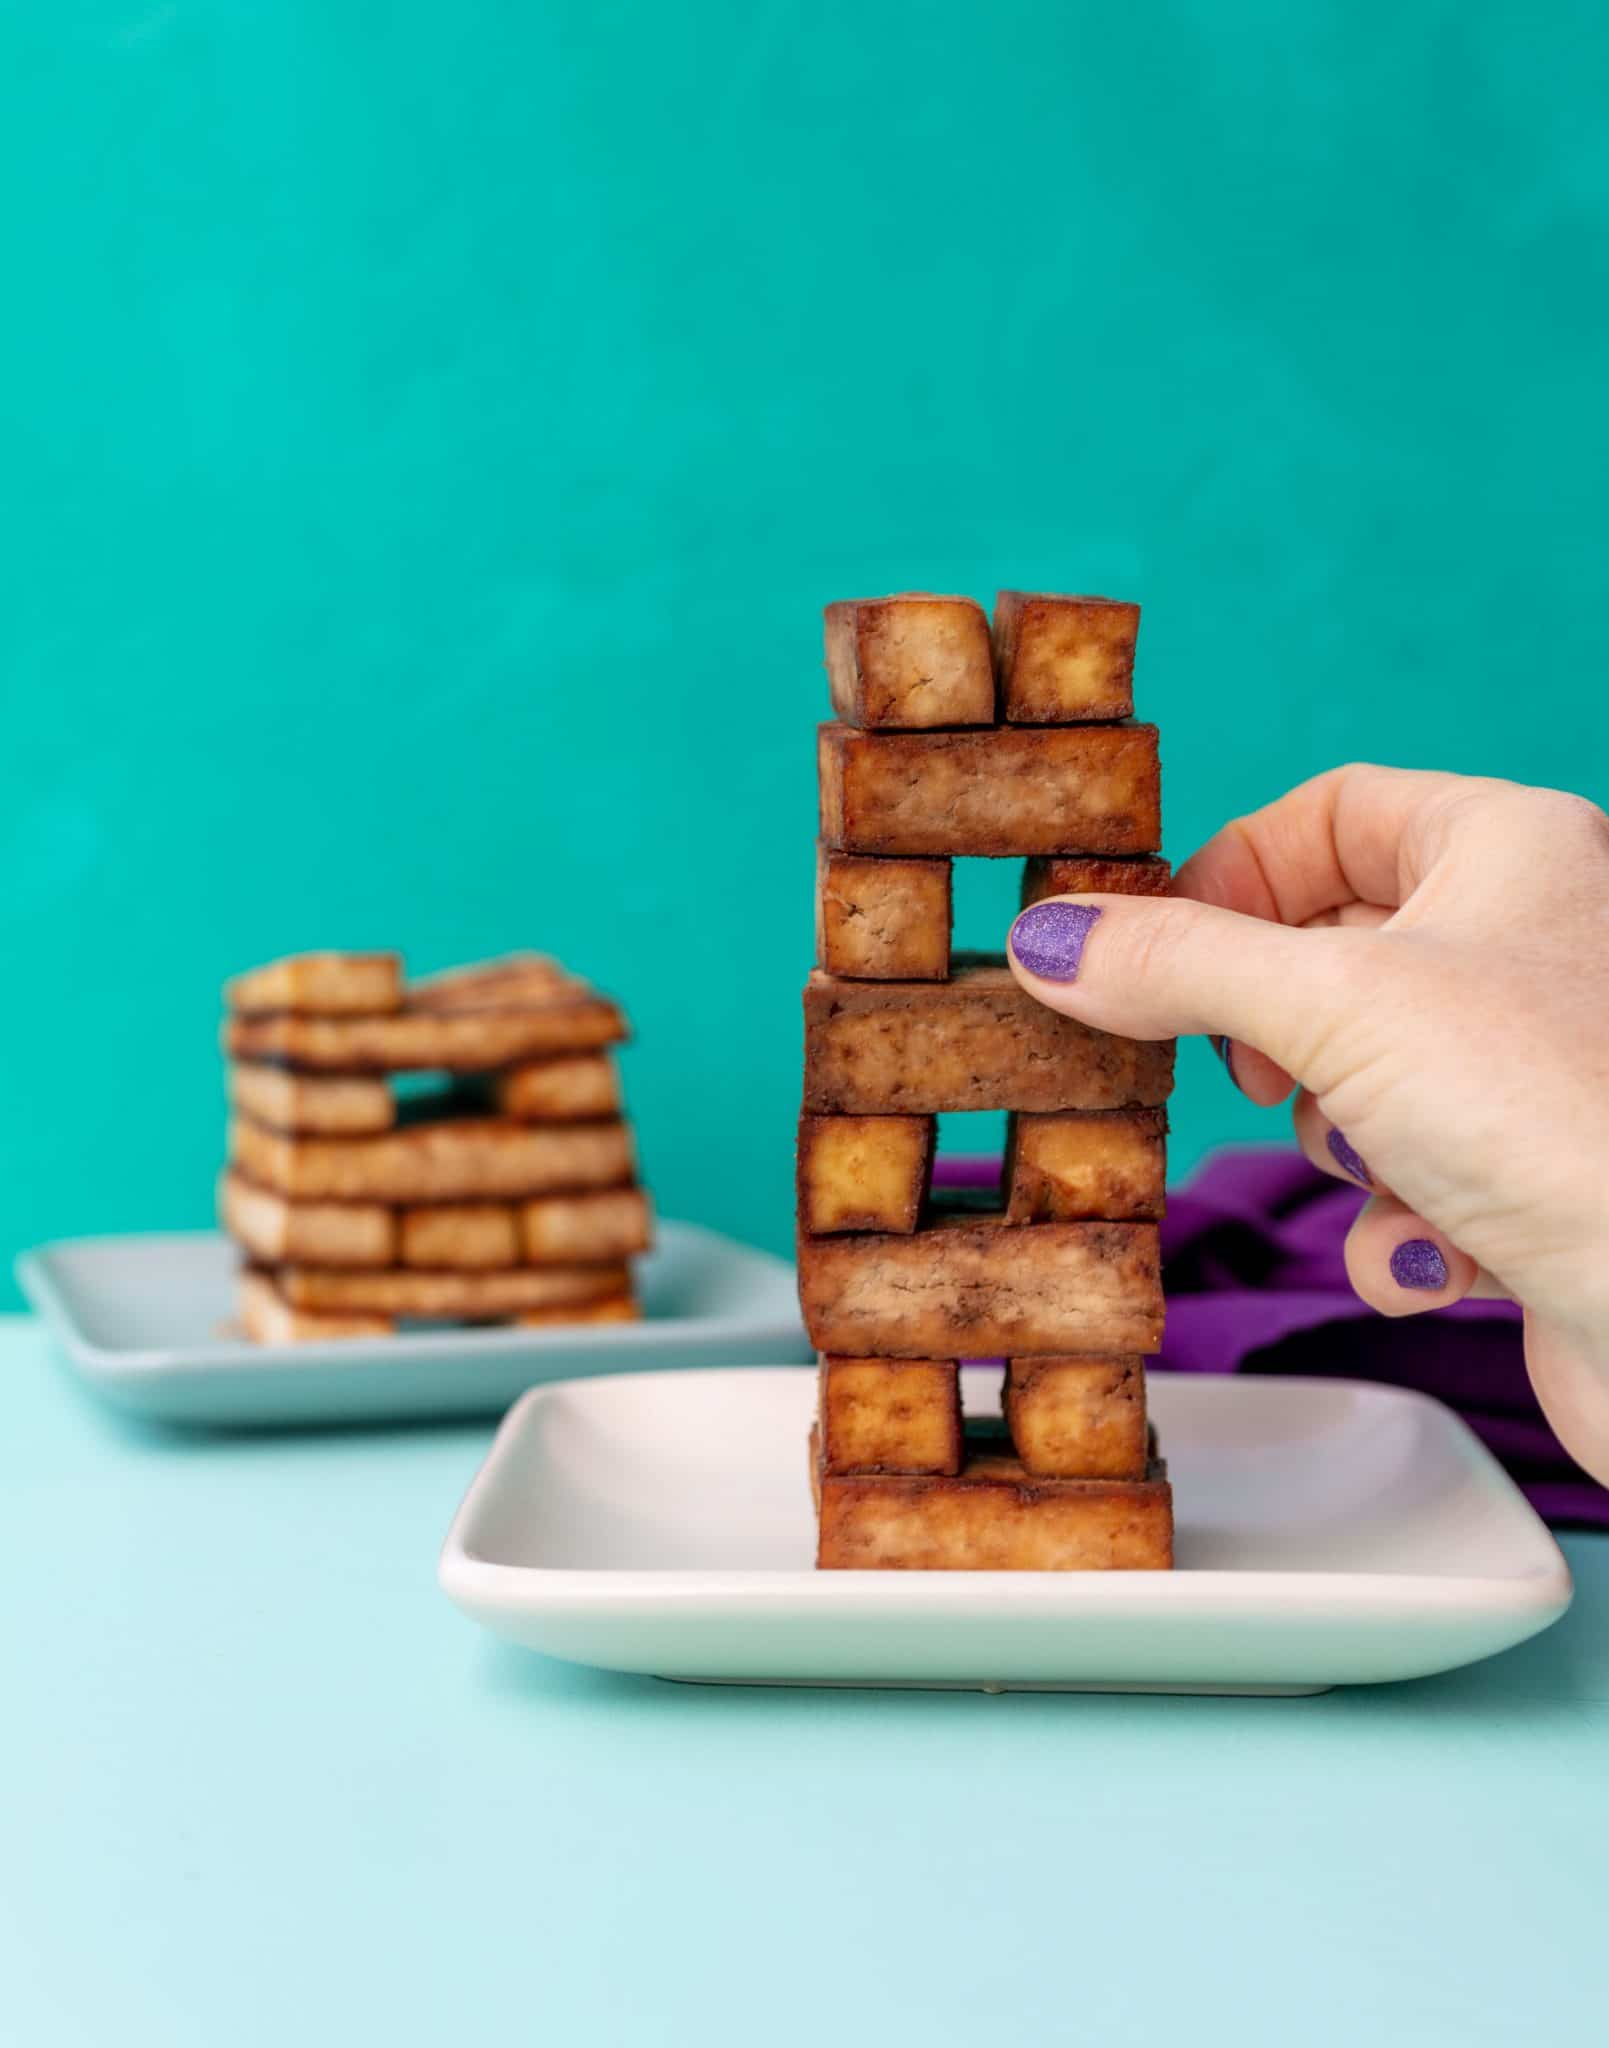 teriyaki tofu that is in the shape of a jenga game